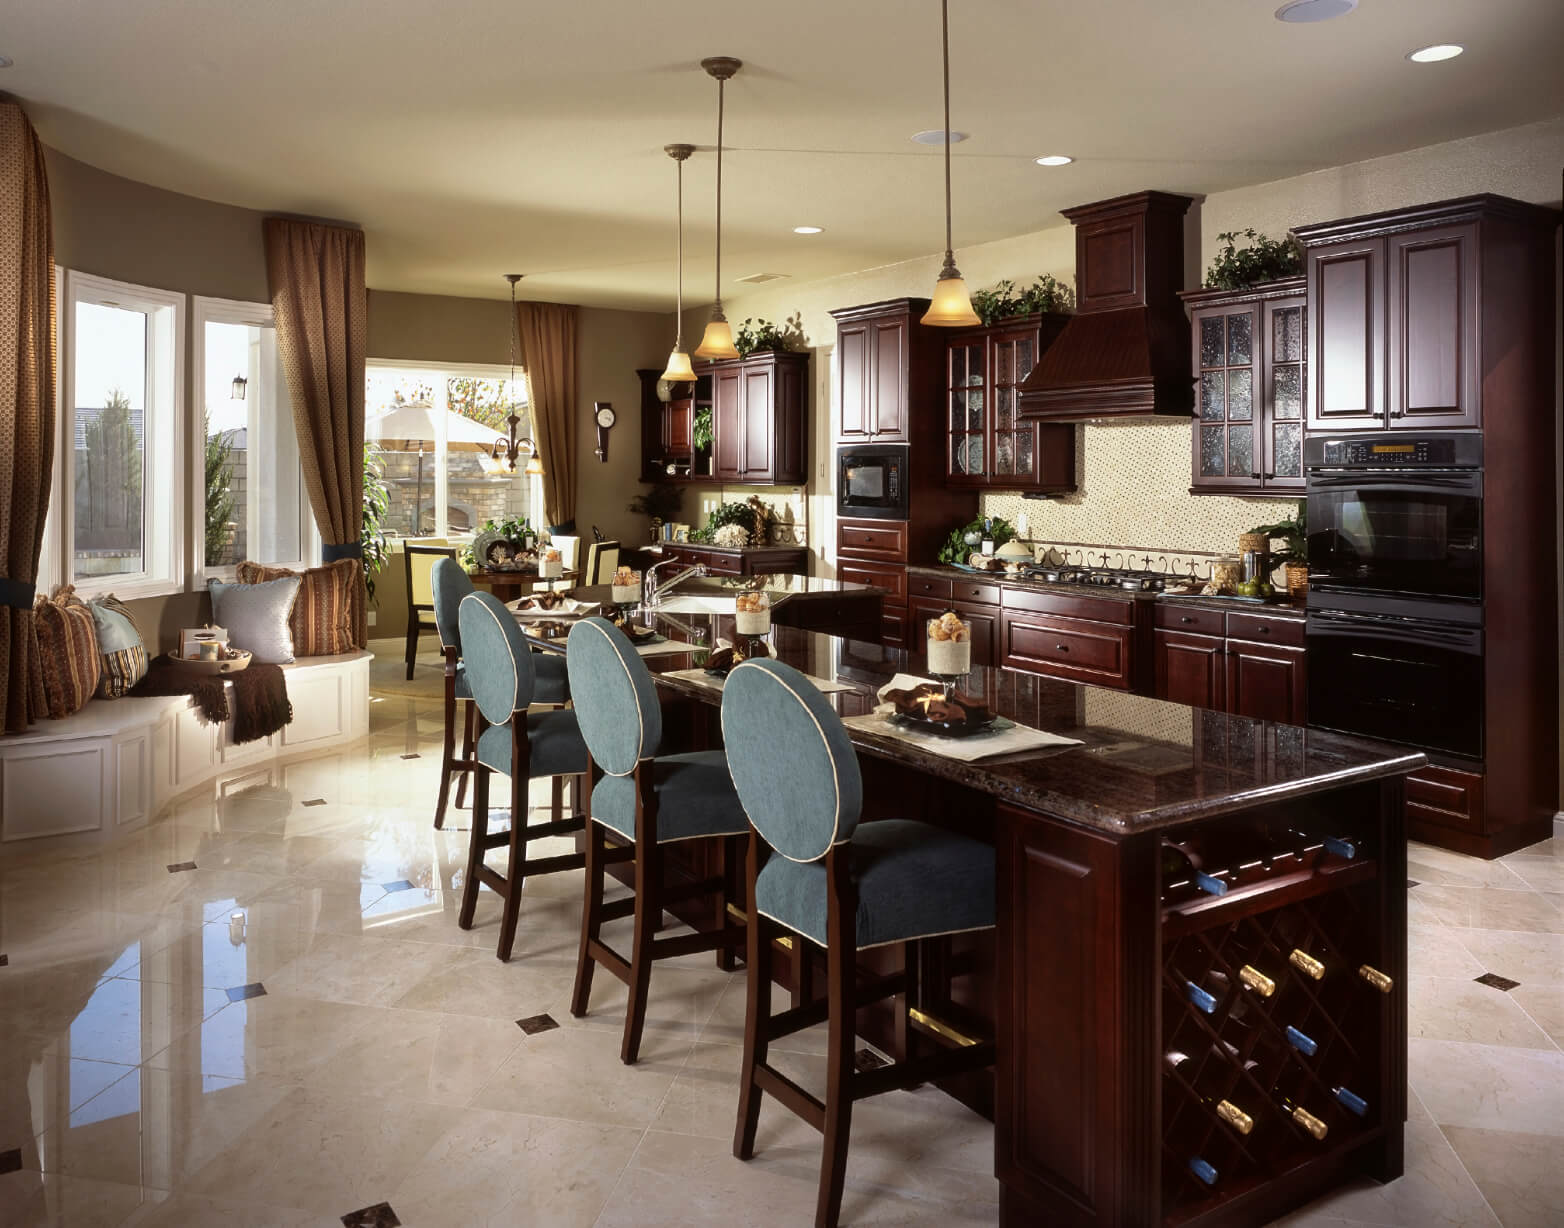 Dark cherry wood and darker marble countertops unify this kitchen, featuring expansive L-shaped island with built-in wine rack and ample dining space.